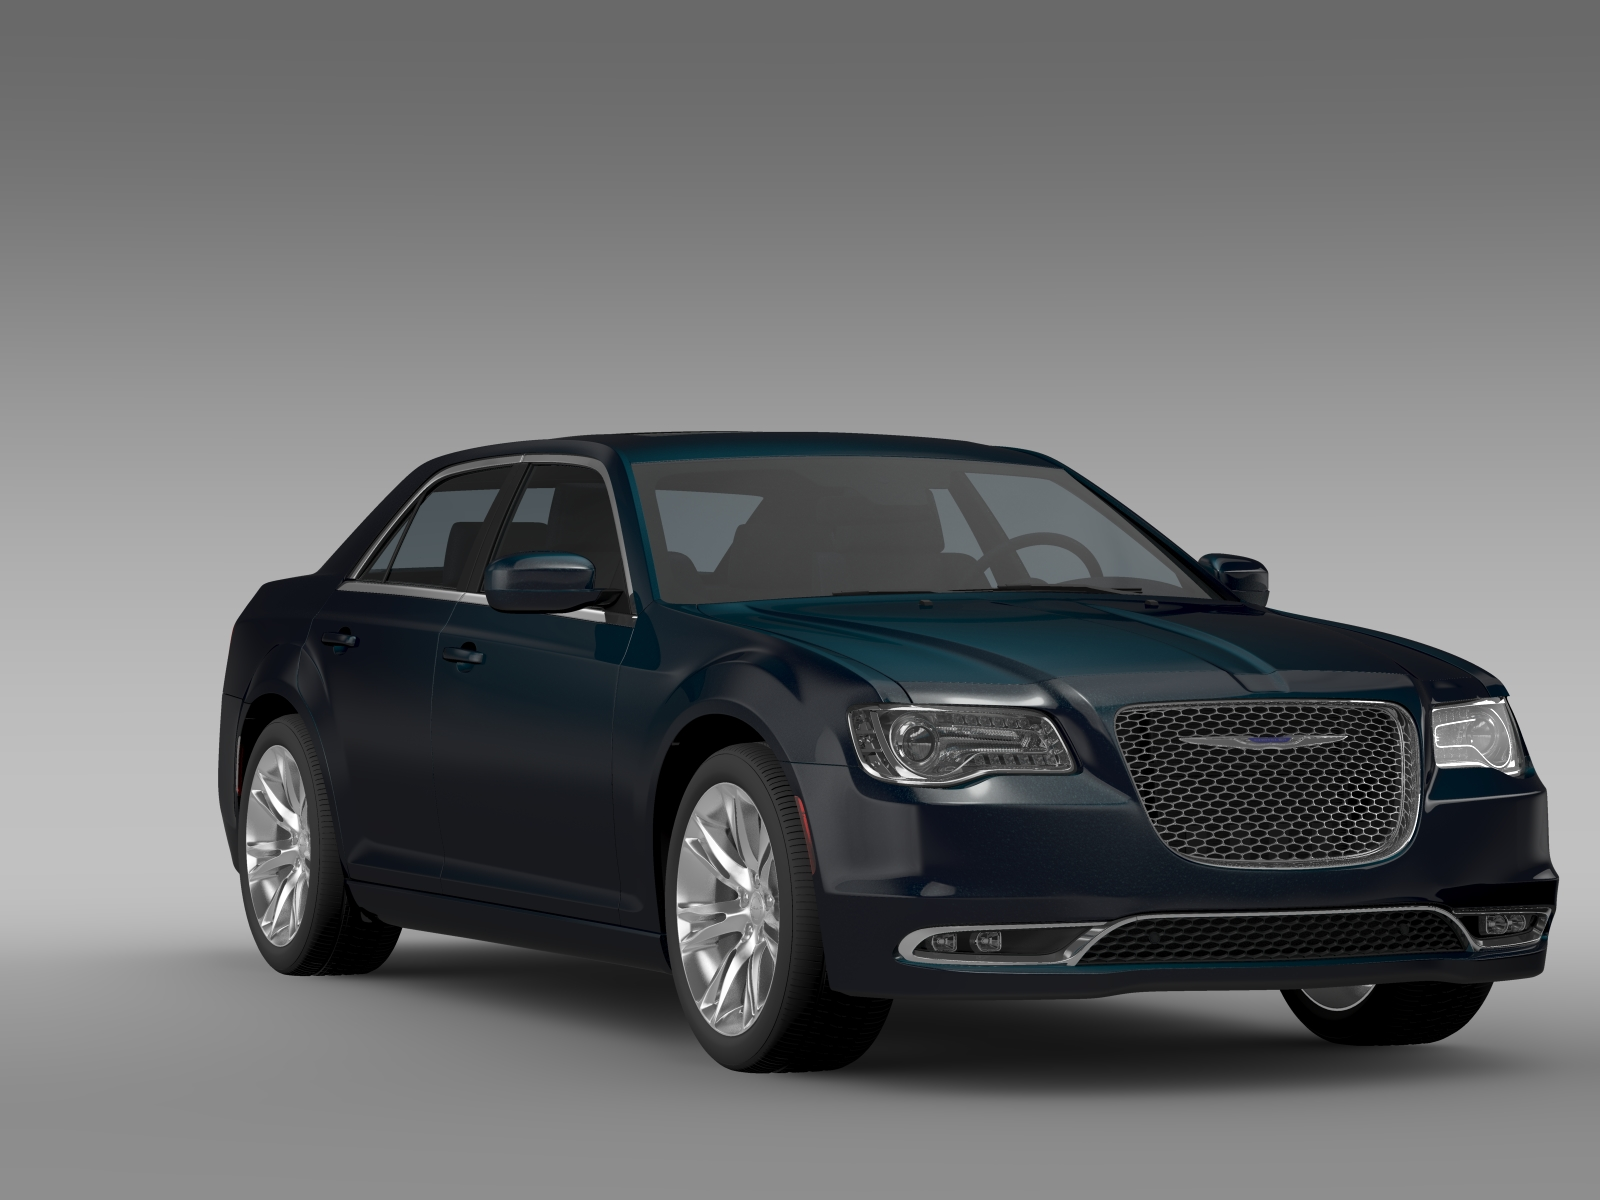 chrysler 300 c lx2 2016 3d model buy chrysler 300 c lx2 2016 3d model flatpyramid. Black Bedroom Furniture Sets. Home Design Ideas